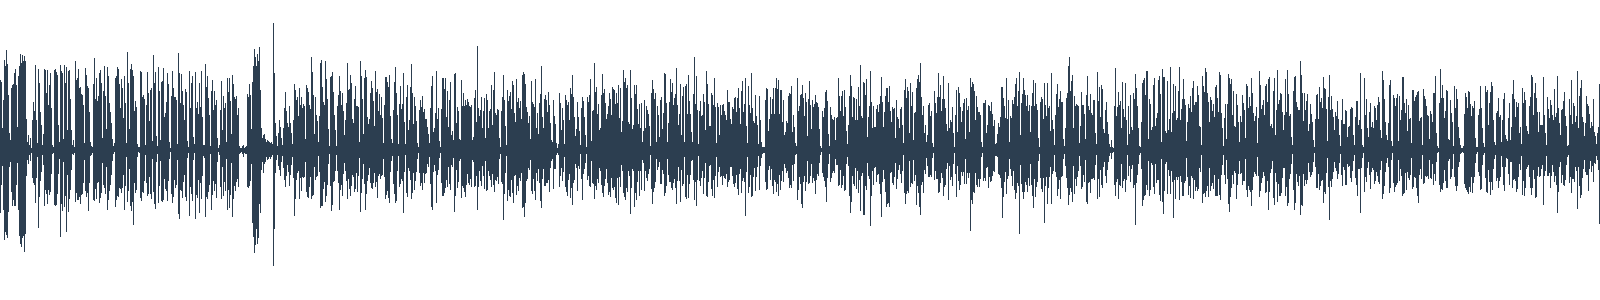 2. adventná nedeľa waveform